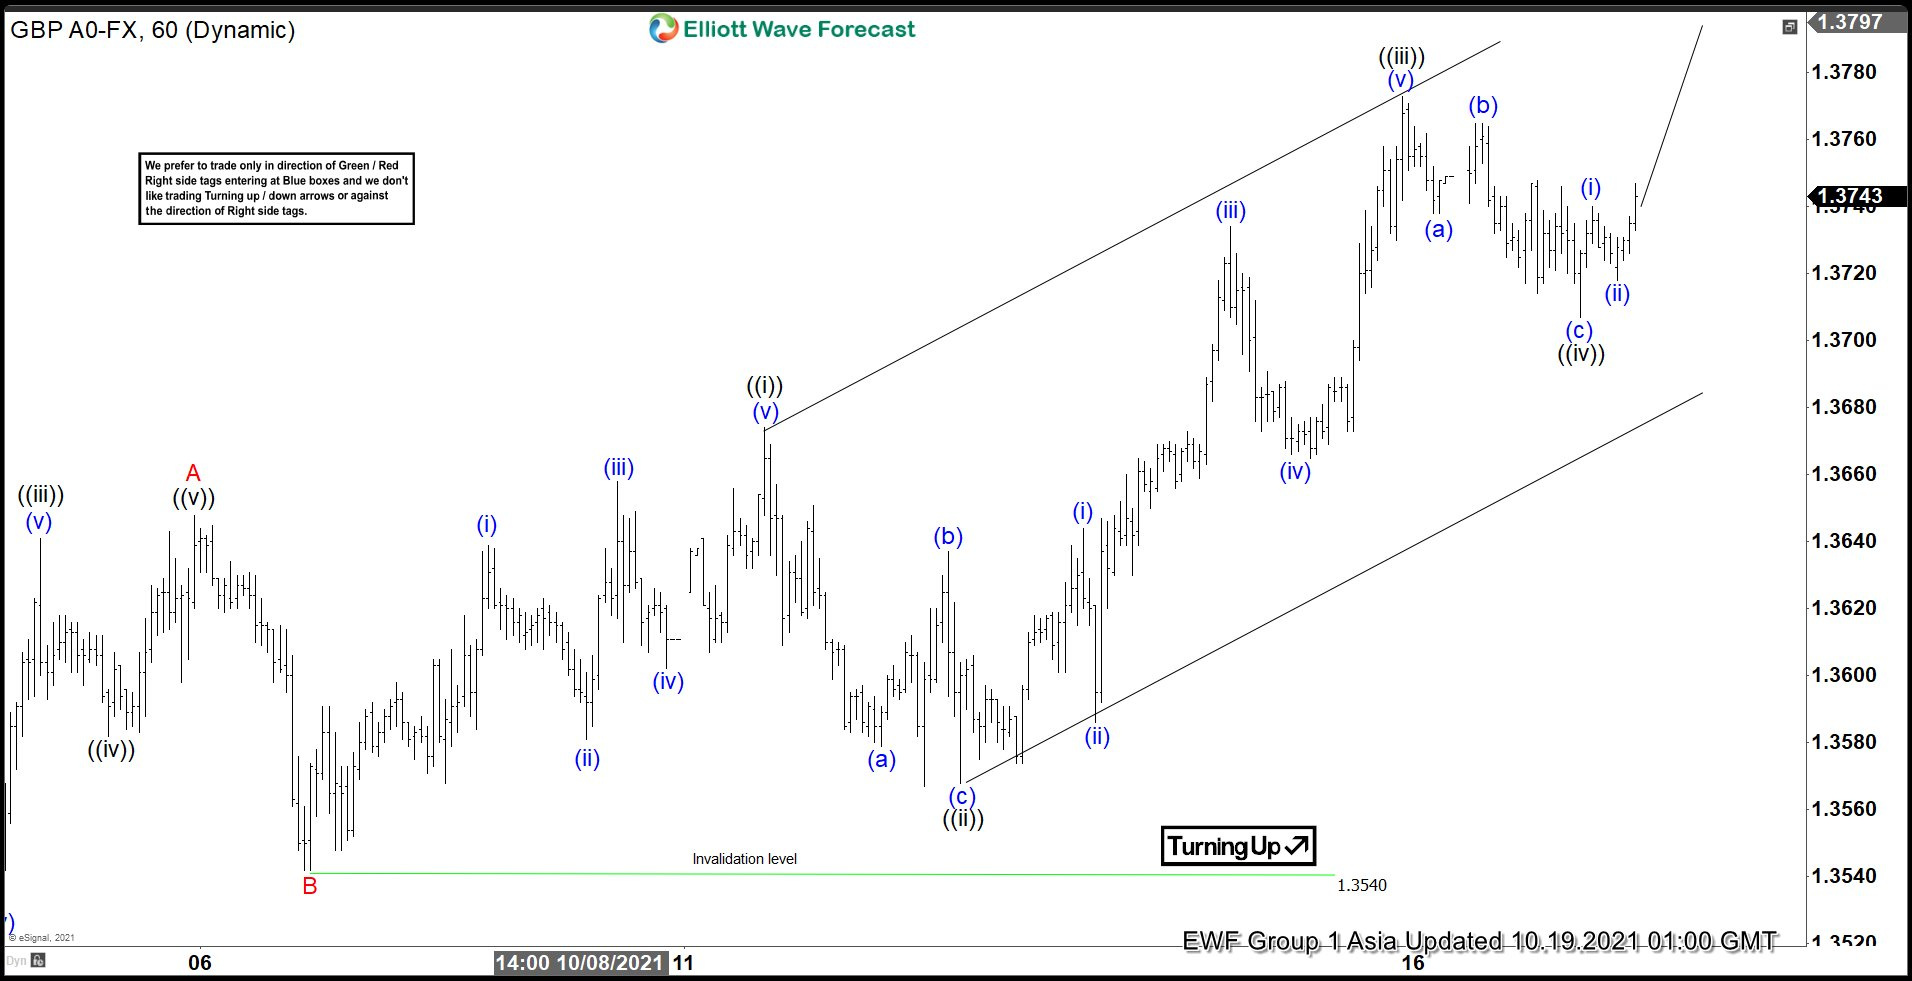 Elliott Wave View: GBPUSD Looking to End Zigzag Rally